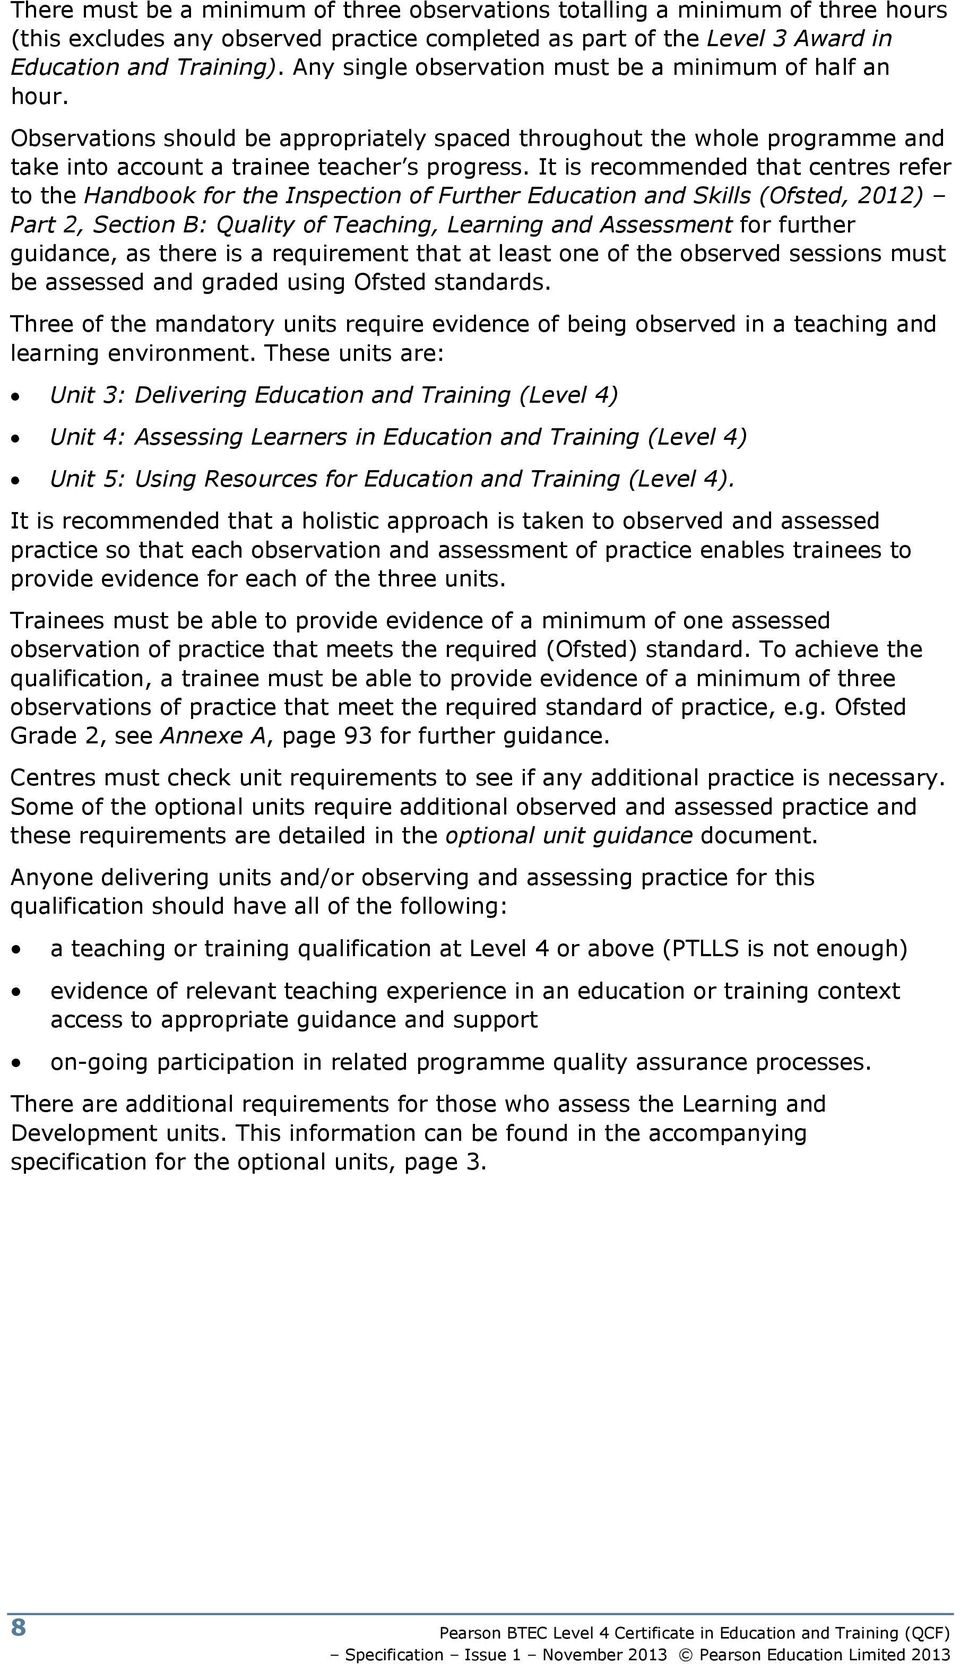 It is recommended that centres refer to the Handbook for the Inspection of Further Education and Skills (Ofsted, 2012) Part 2, Section B: Quality of Teaching, Learning and Assessment for further